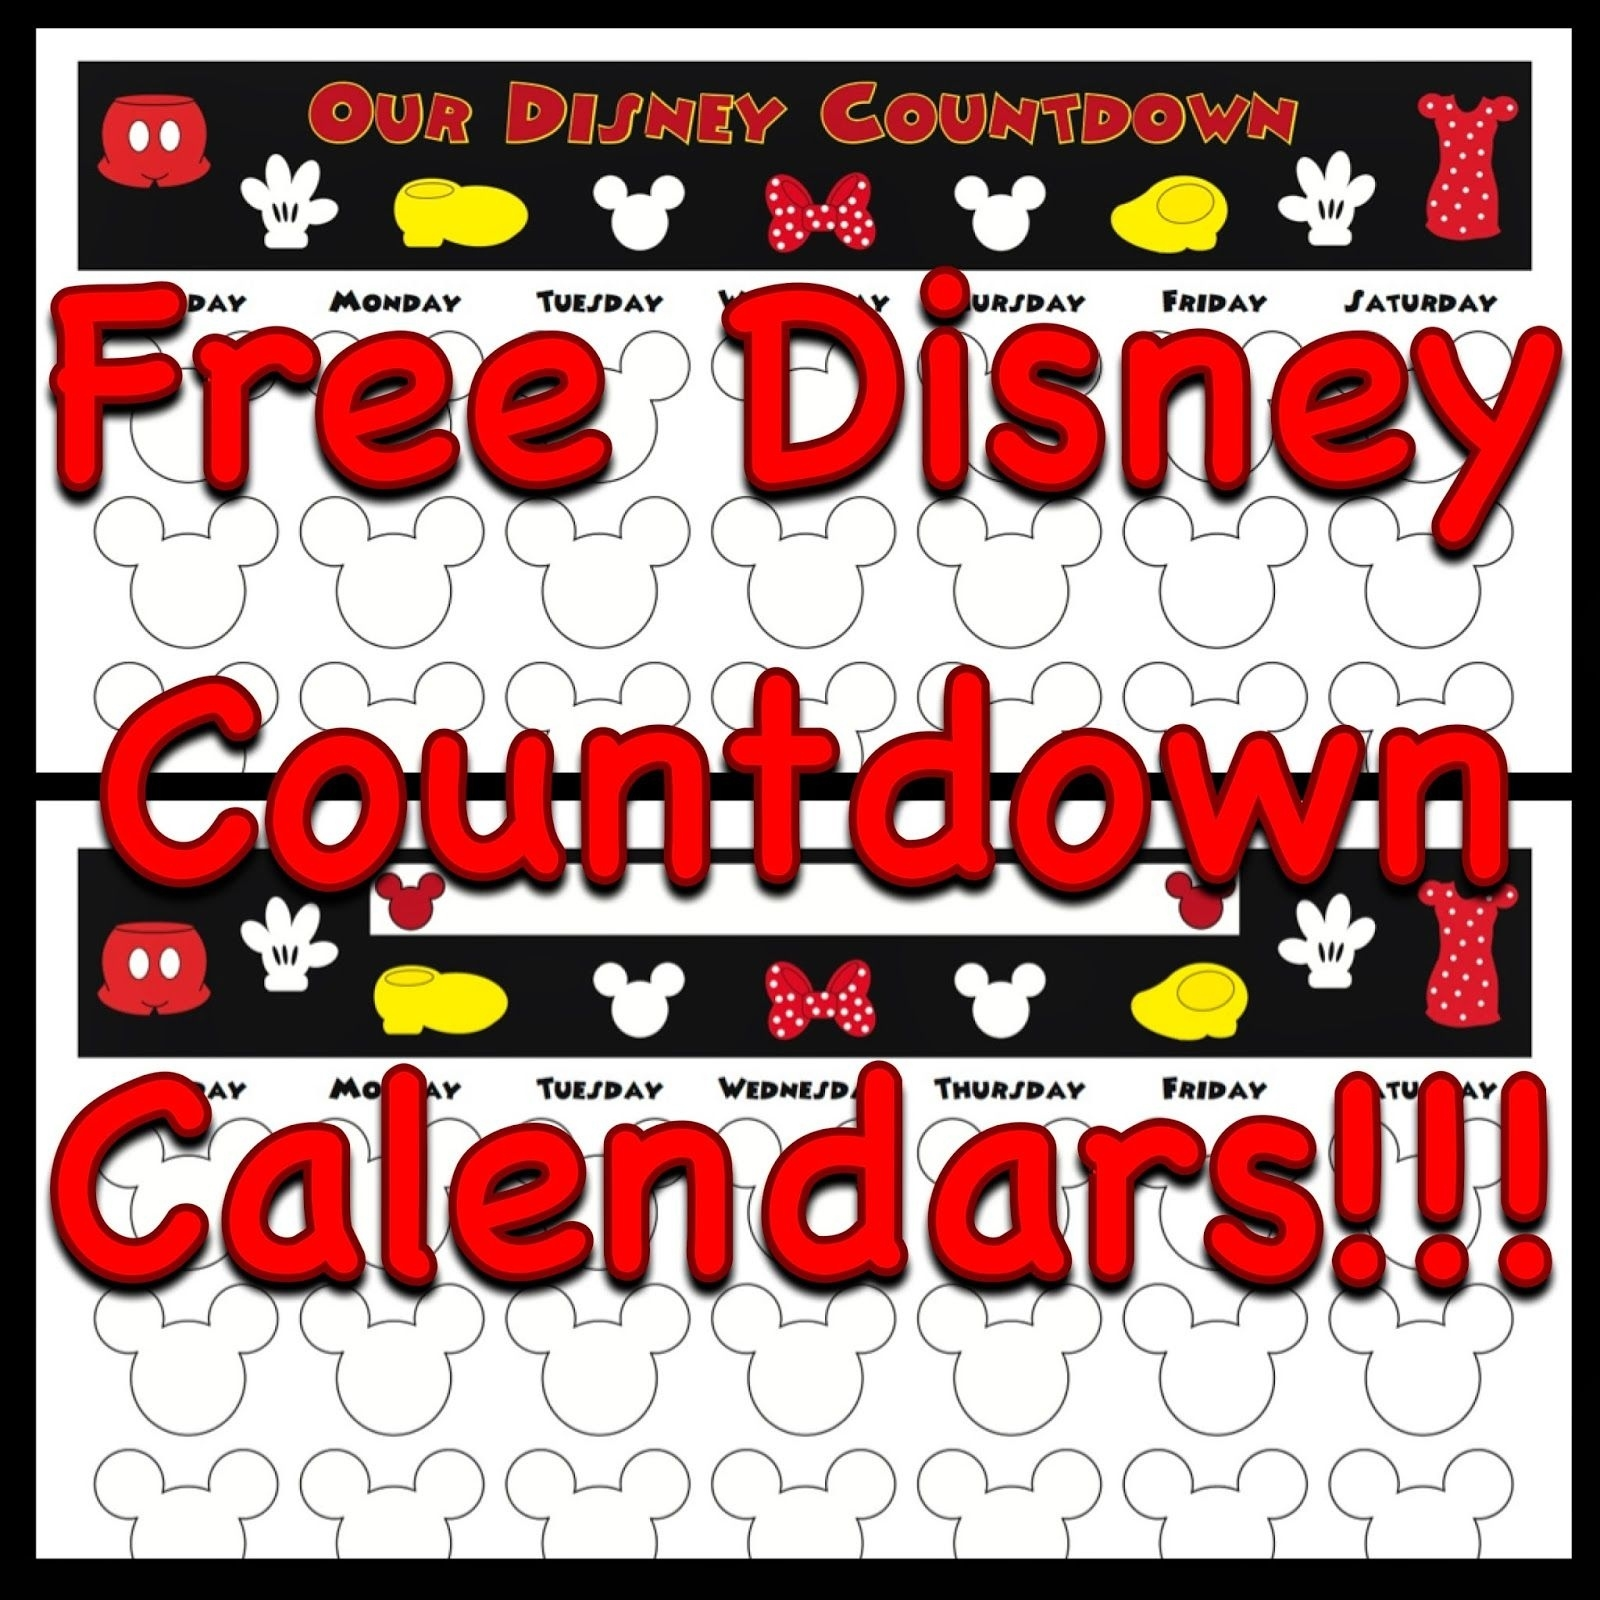 Free, Printable Countdown Calendars To Use For Your Next Remarkable 100 Day Countdown Calendar Printable